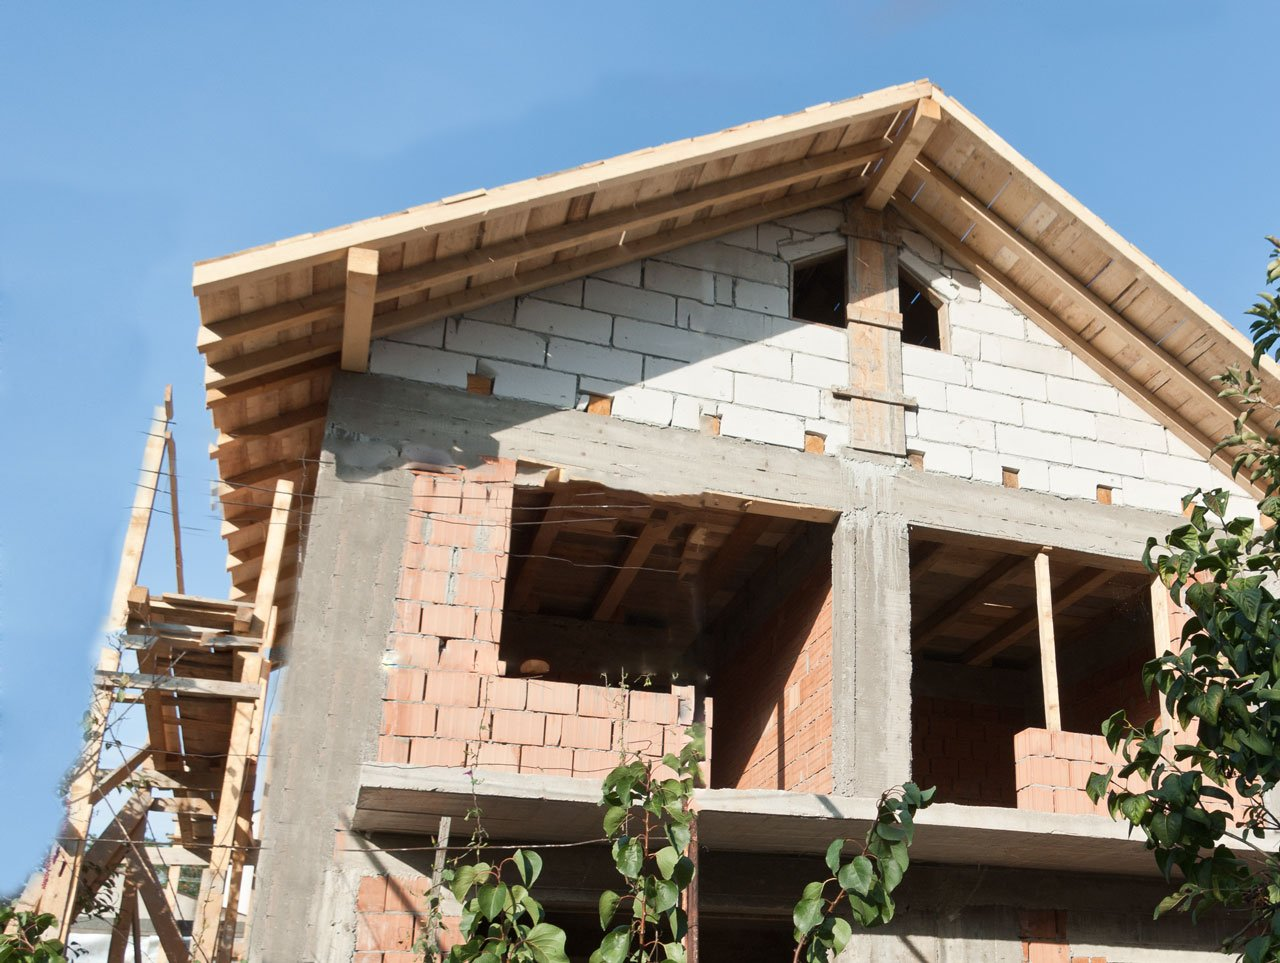 Brick house construction howtospecialist how to build for Brick house construction cost